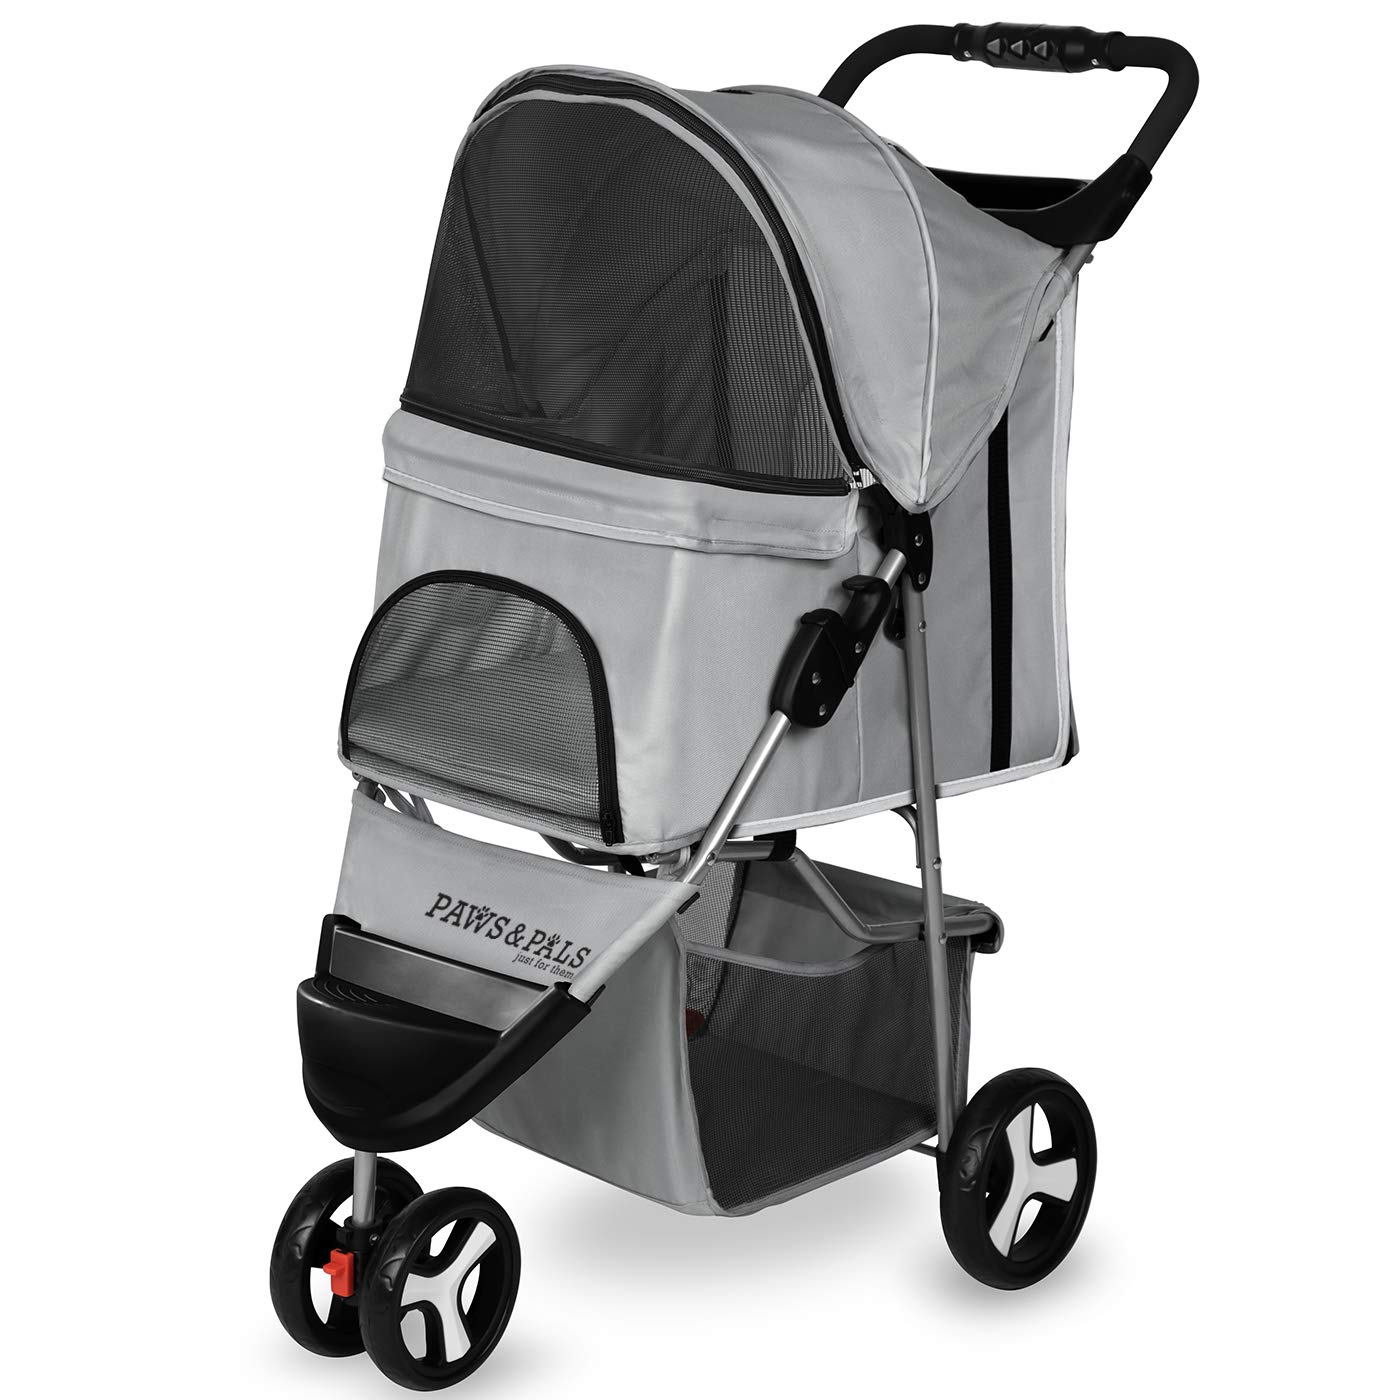 Paws & Pals 3 Wheeler Elite Jogger Pet Stroller Cat/Dog Easy Walk Folding Travel Carrier, Gray by Paws & Pals